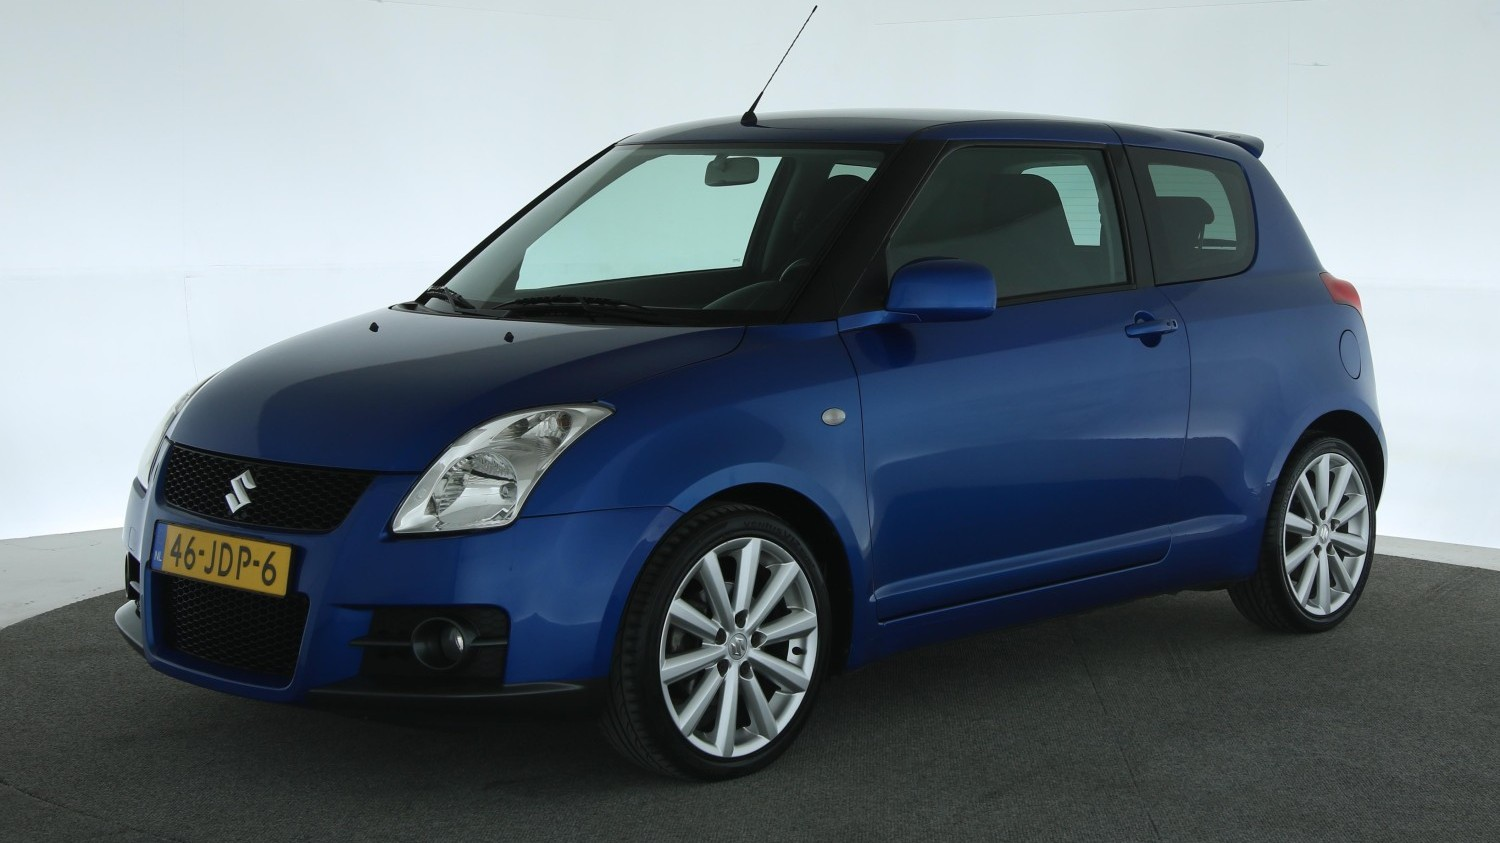 Suzuki Swift Hatchback 2009 46-JDP-6 1